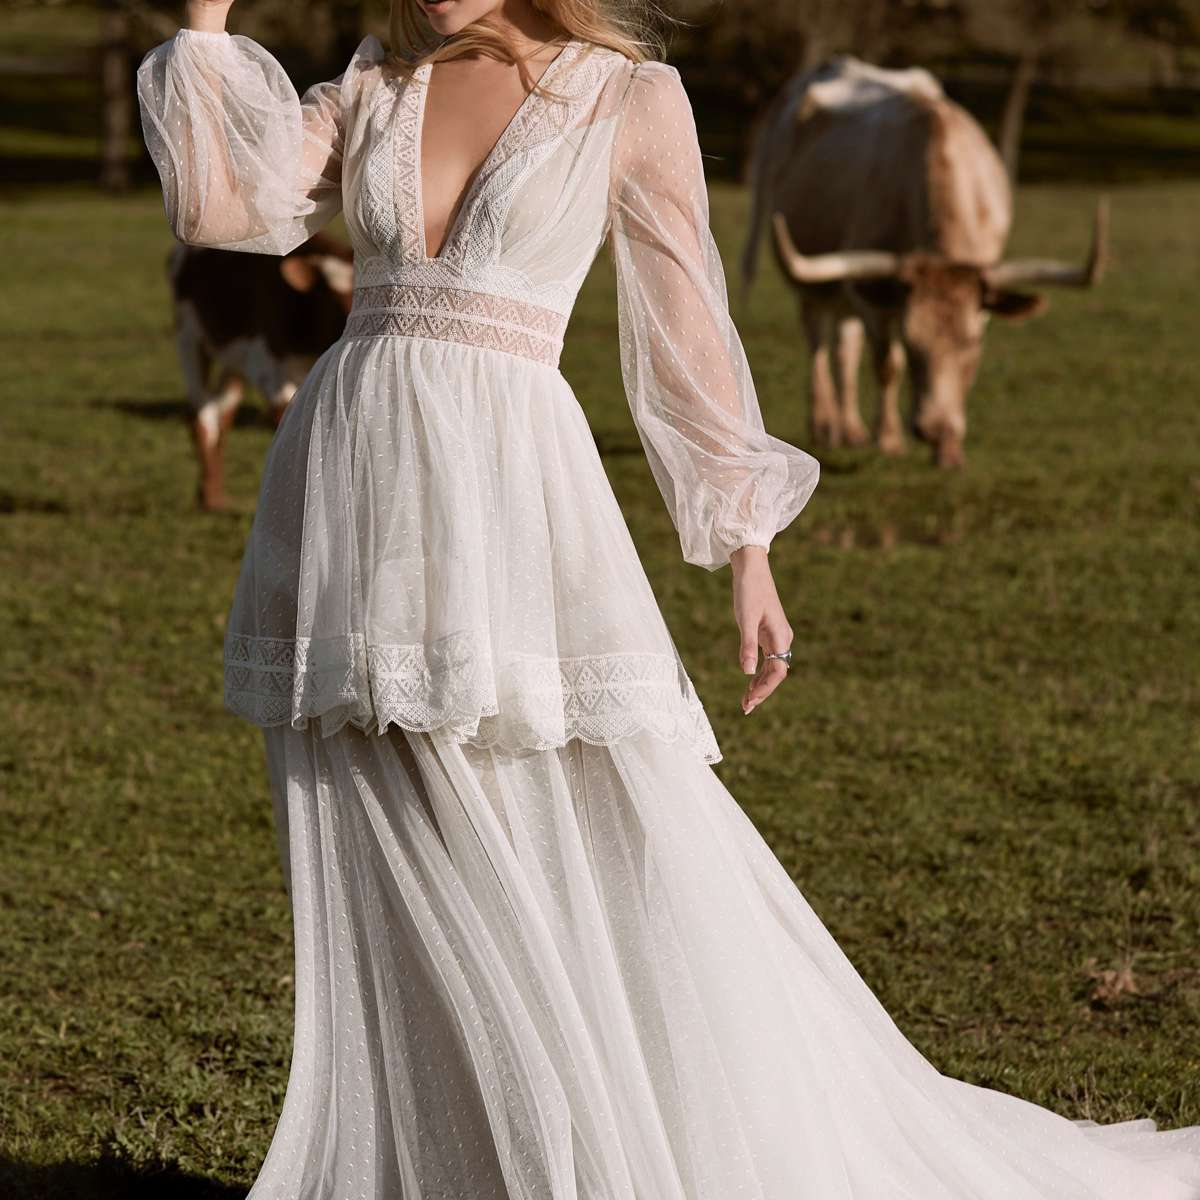 Model in a deep V-neck long-sleeve gown with border lace trim and a tiered skirt